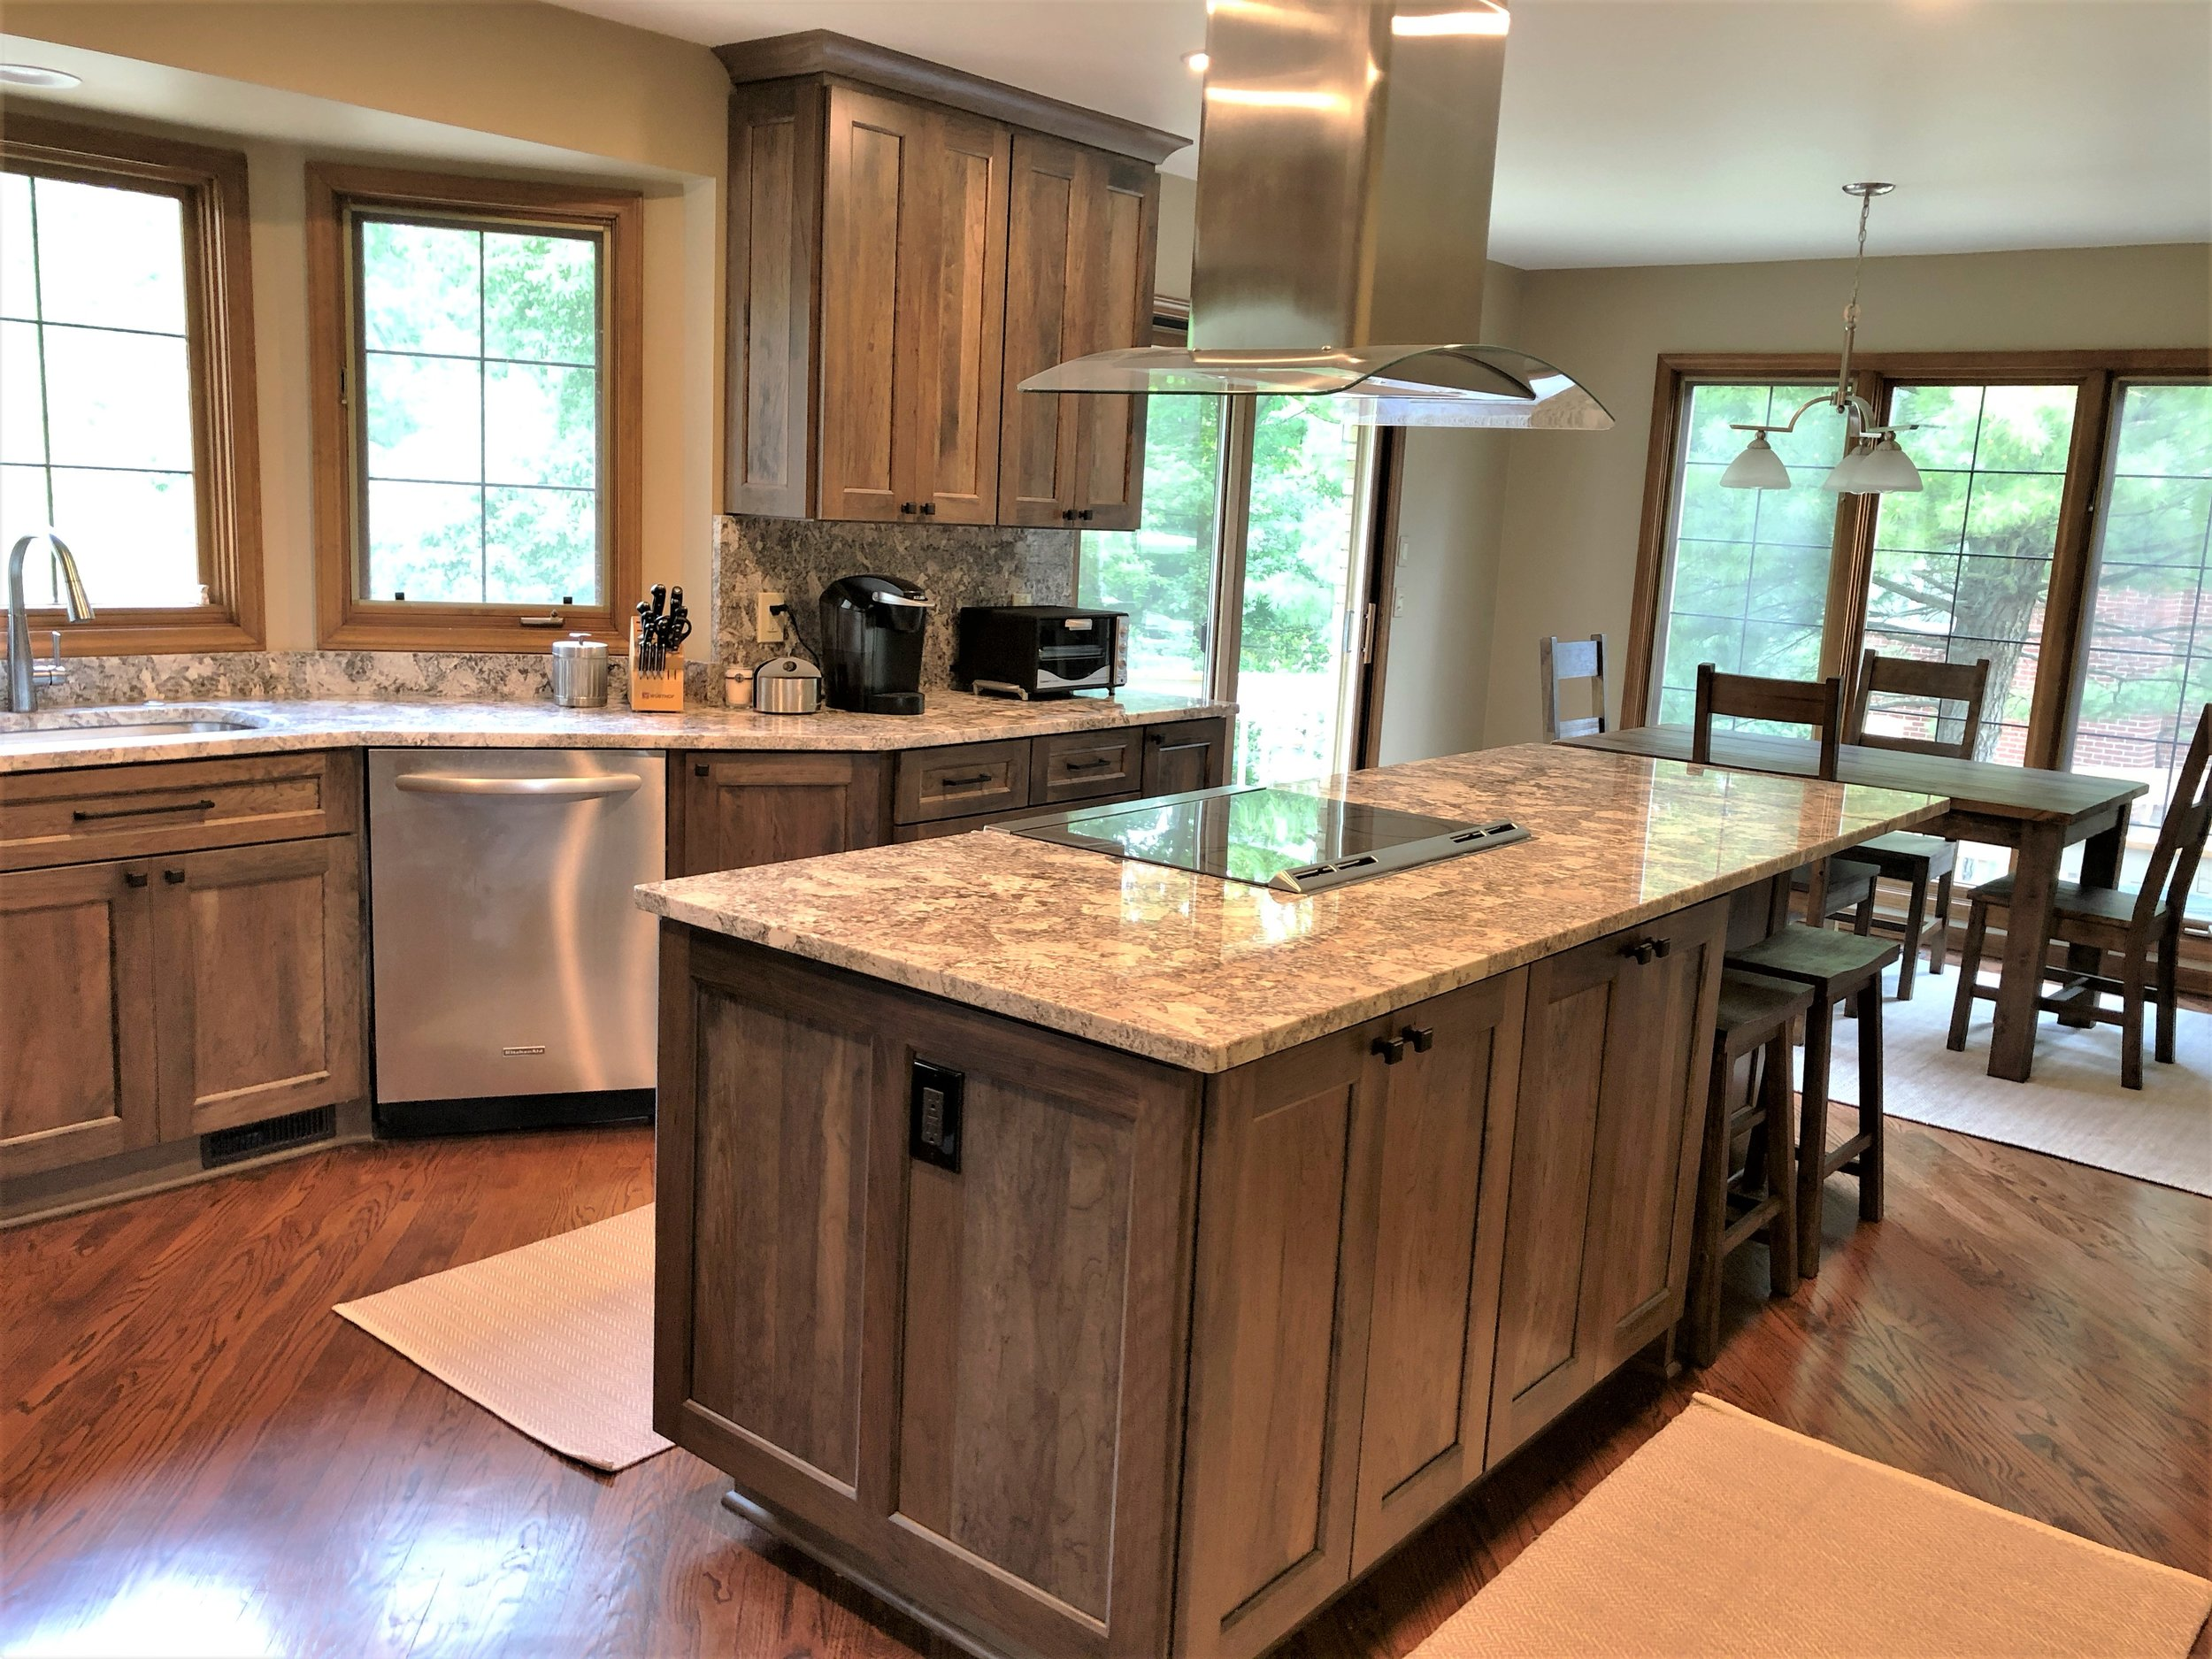 Northville Kitchen Renovation